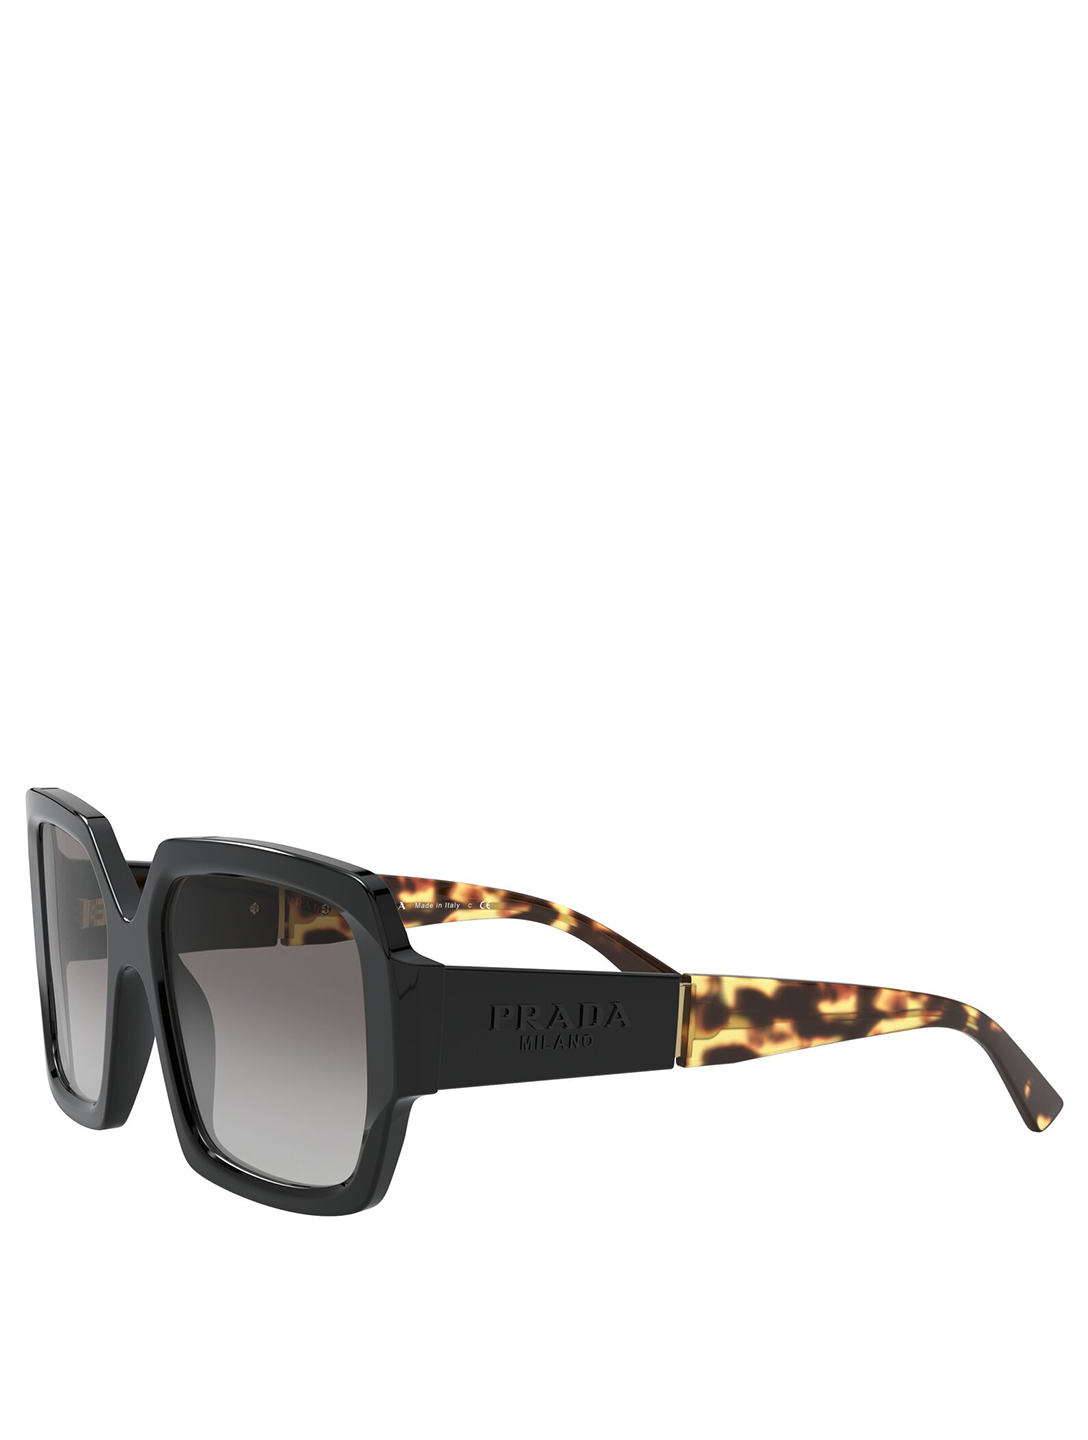 PRADA Square Sunglasses Women's Black